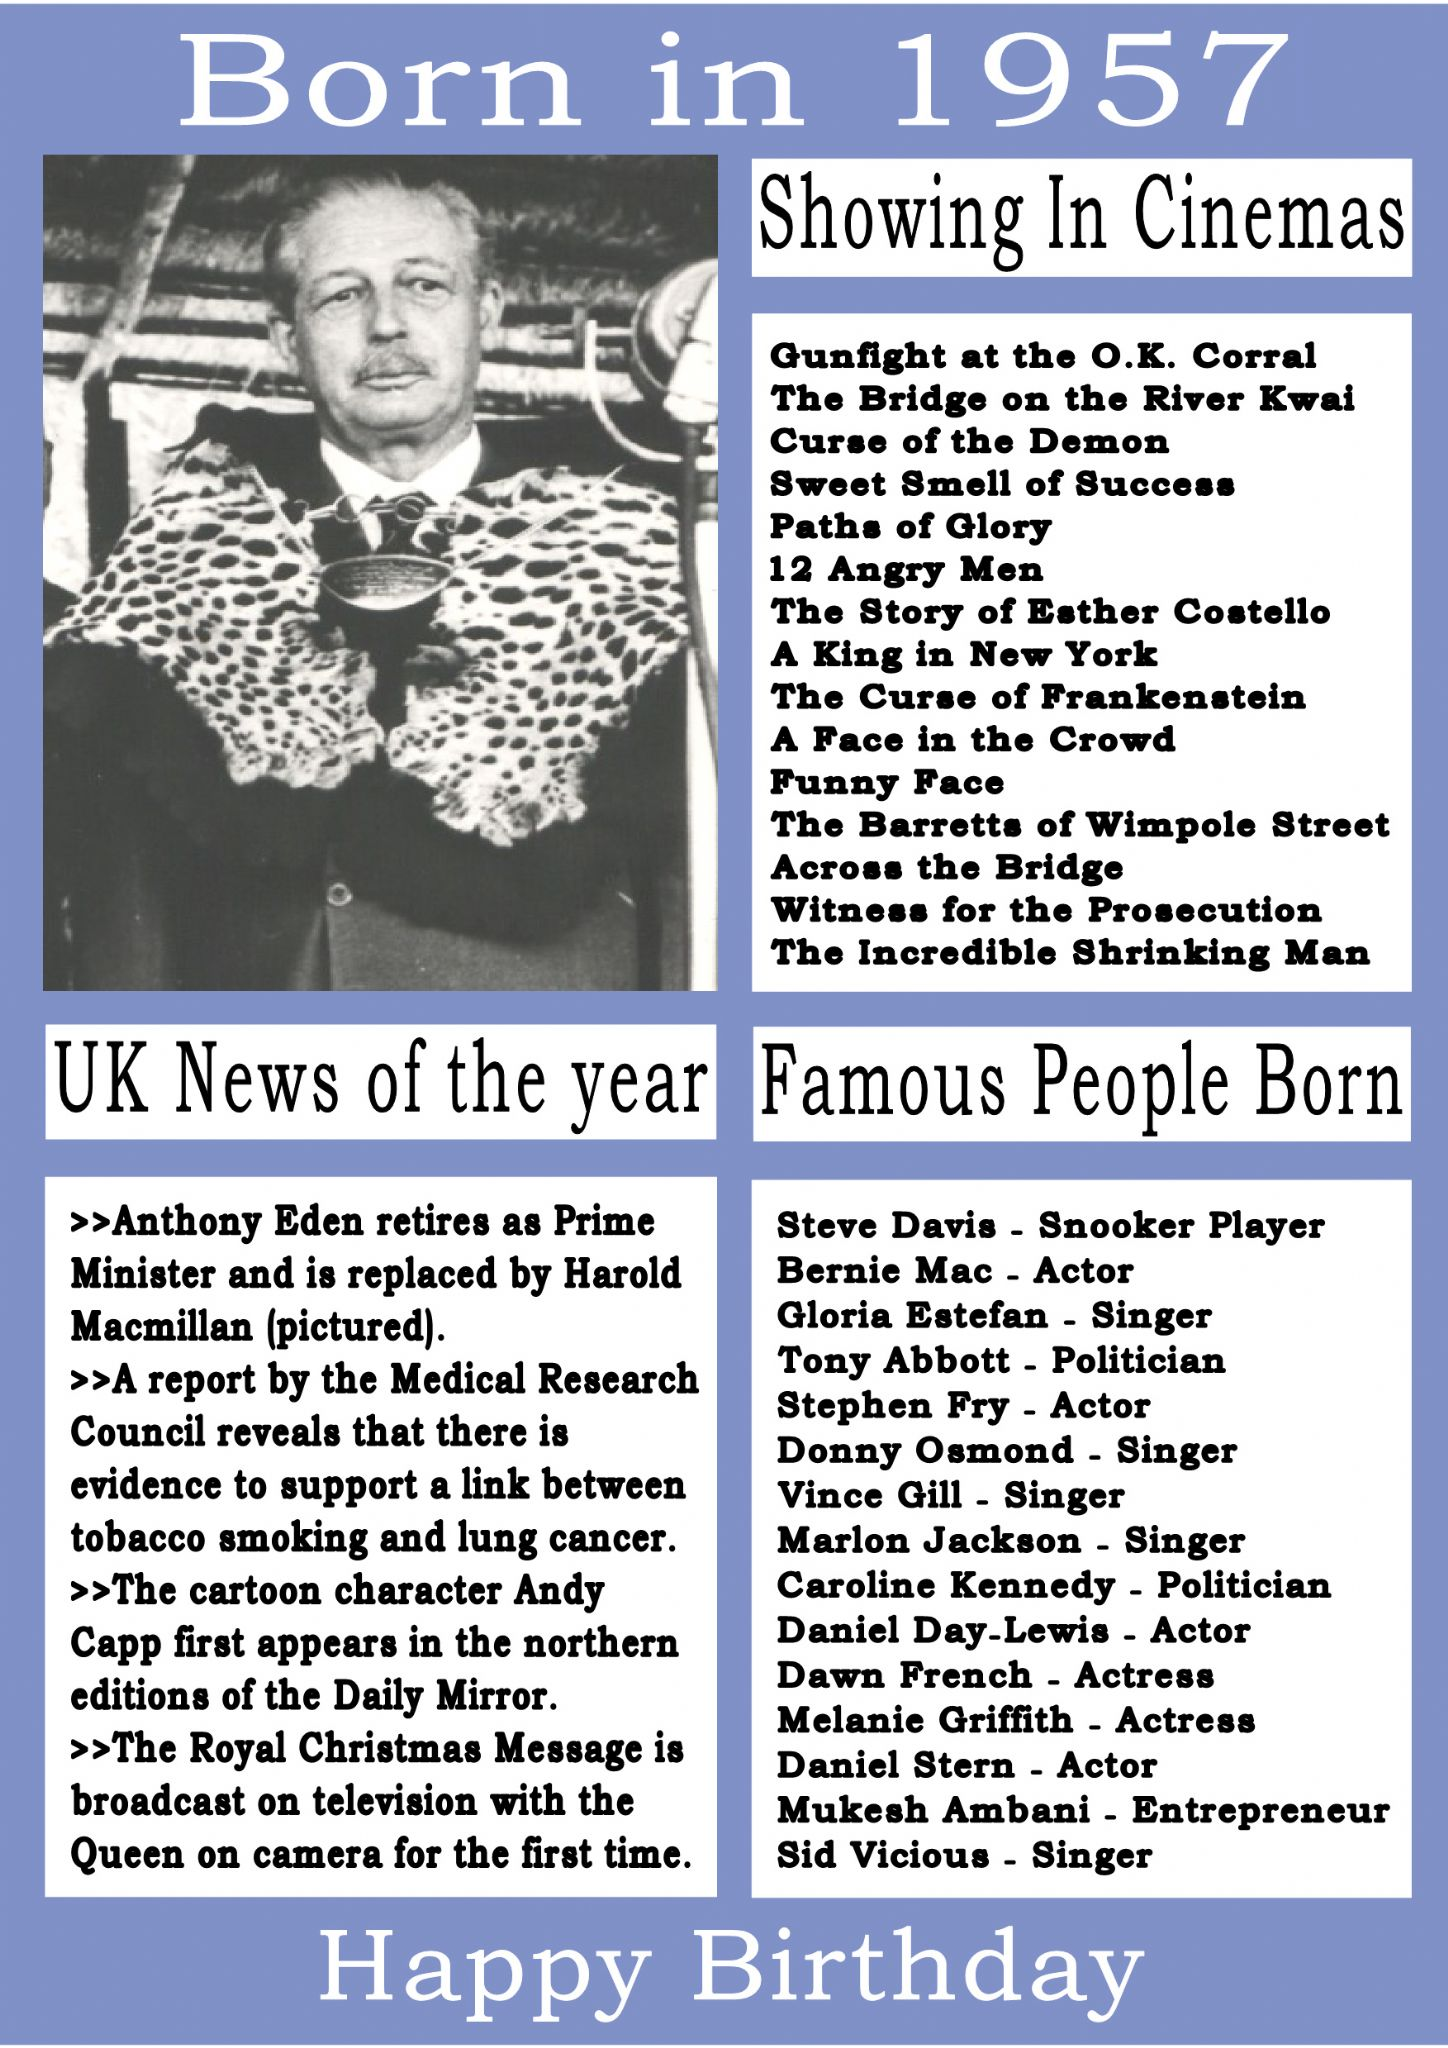 Famous People Born On Christmas.Born In 1957